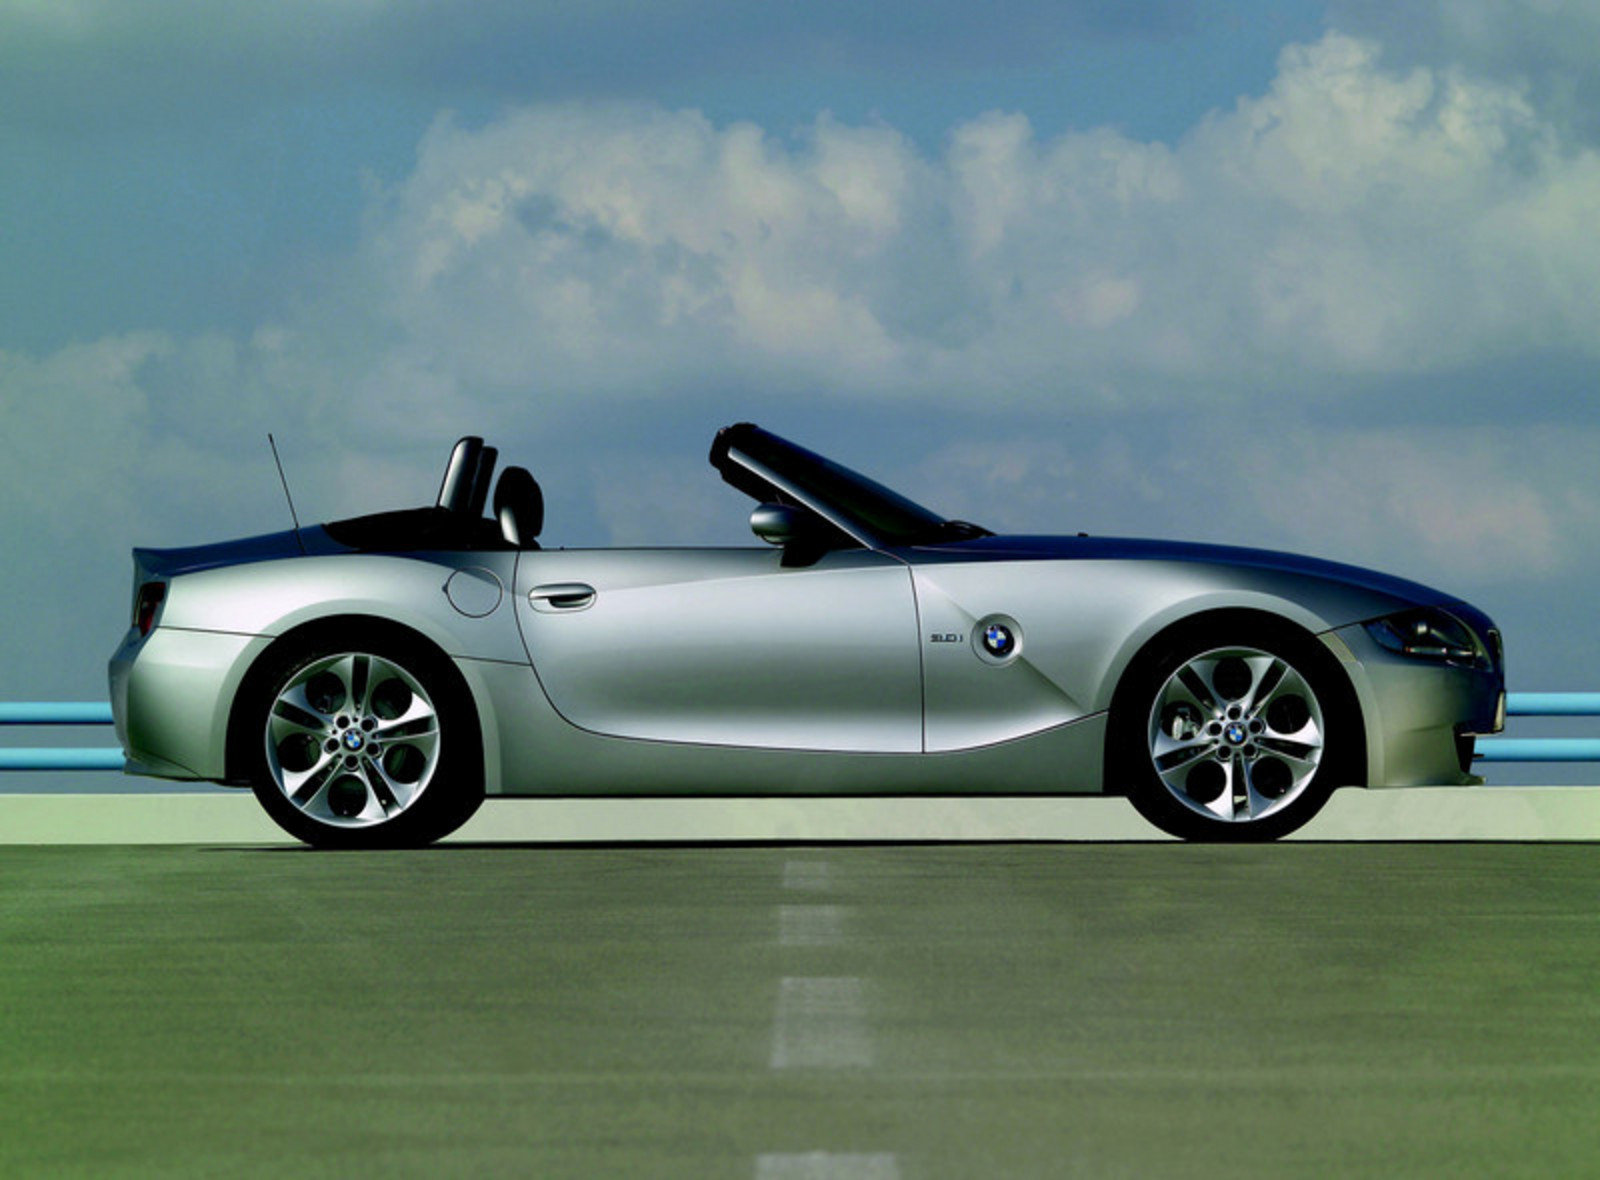 2007 Bmw Z4 Roadster Picture 36616 Car Review Top Speed